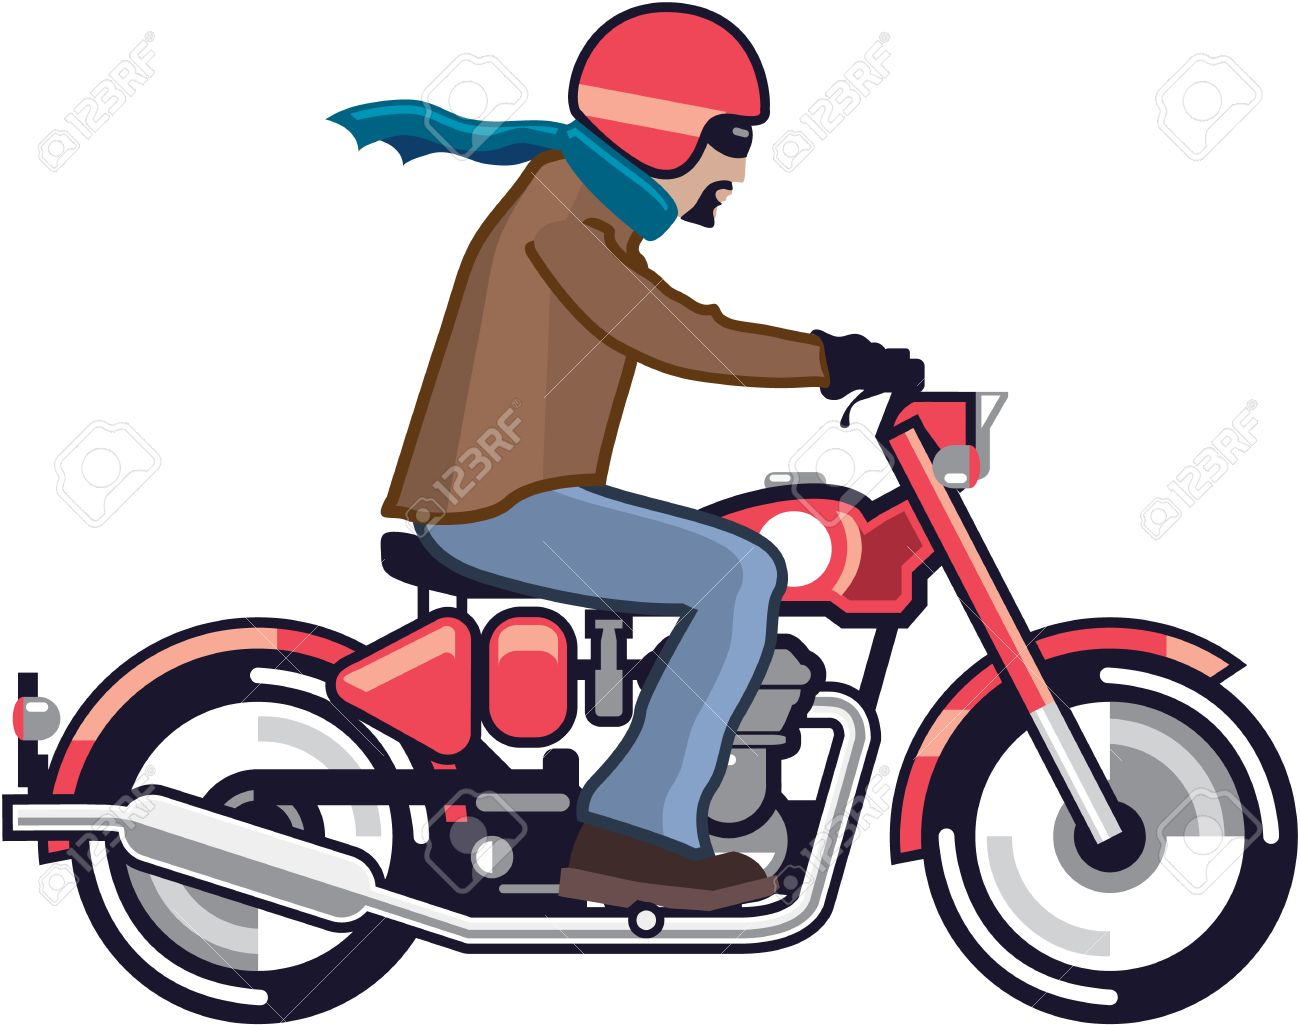 1300x1025 Sweet Design Clipart Motorcycle Dude On The Vintage Vector